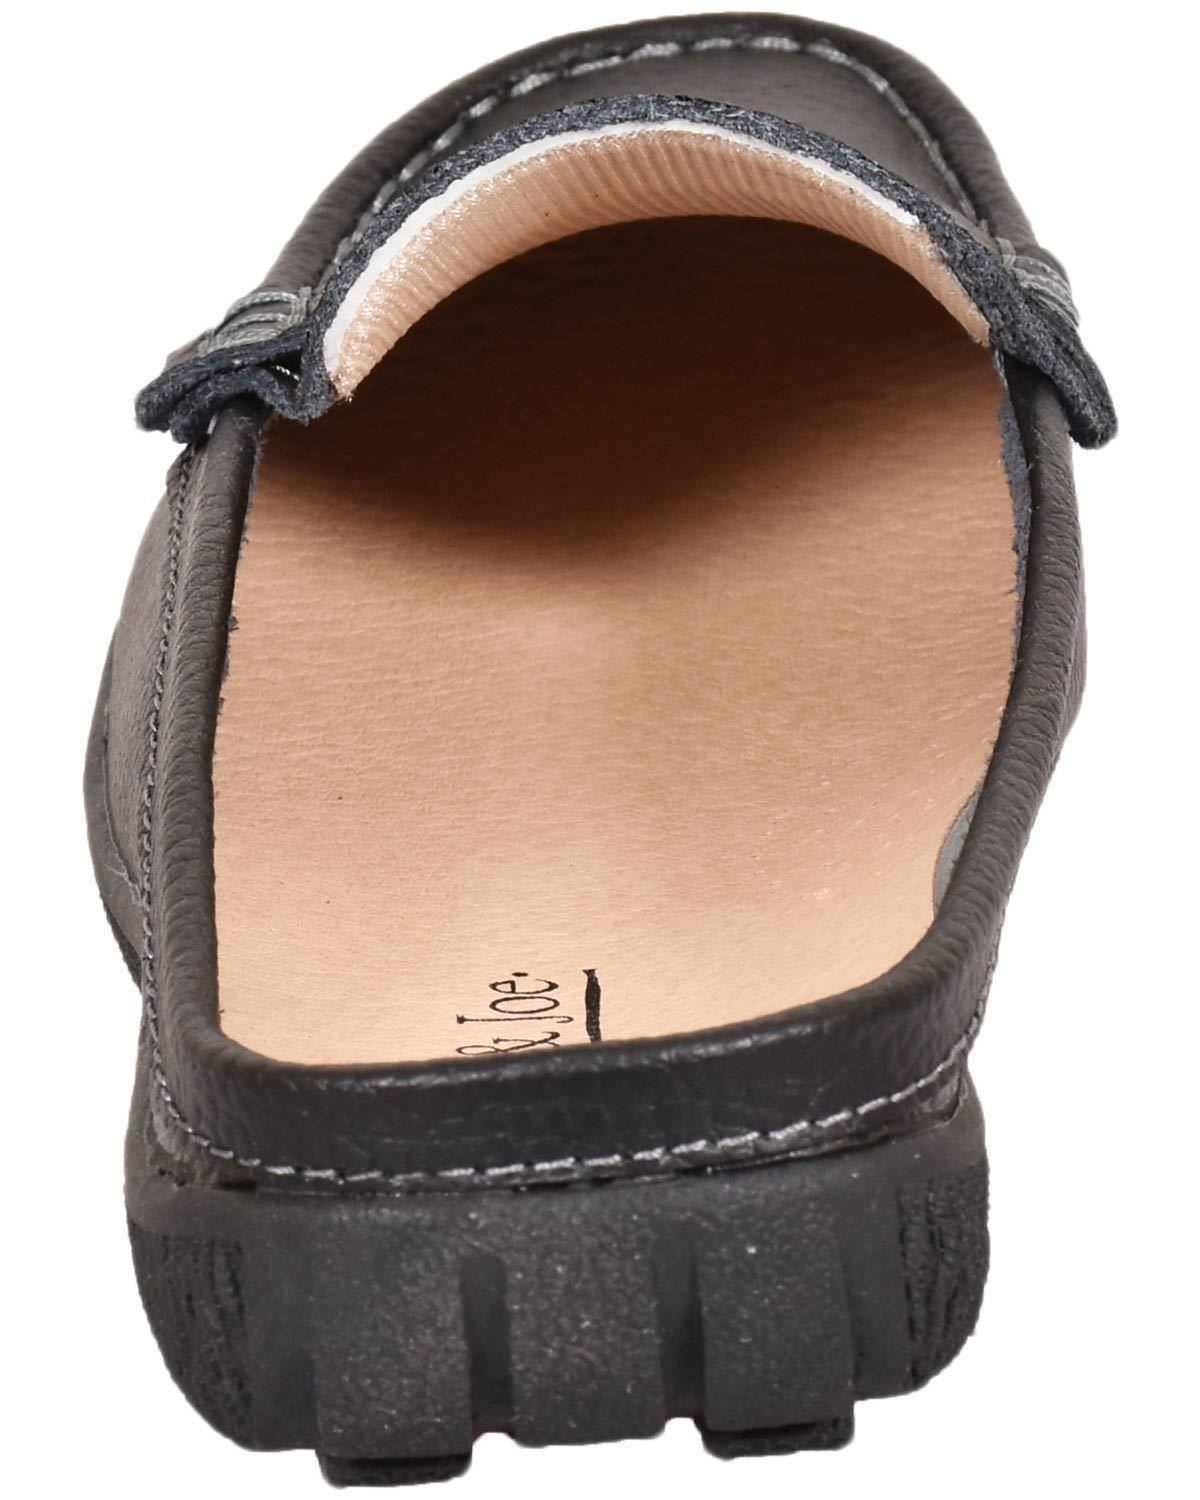 Ladies-Leather-Loafer-Mules-Comfort-Shoes-Womens-Slider-Moccasins-Shoes thumbnail 5